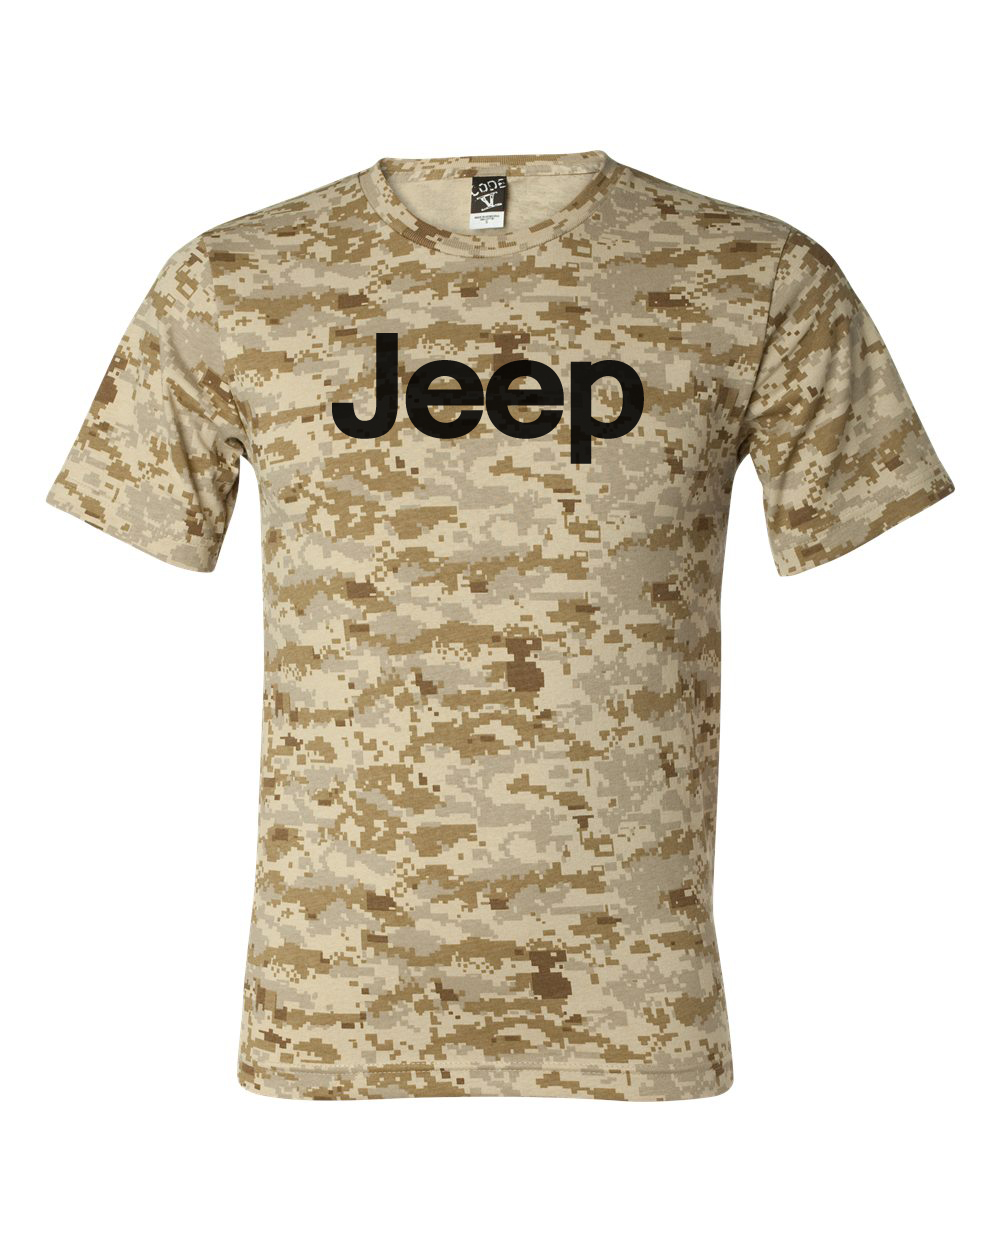 Jeep Desert Digital Camo T-Shirt